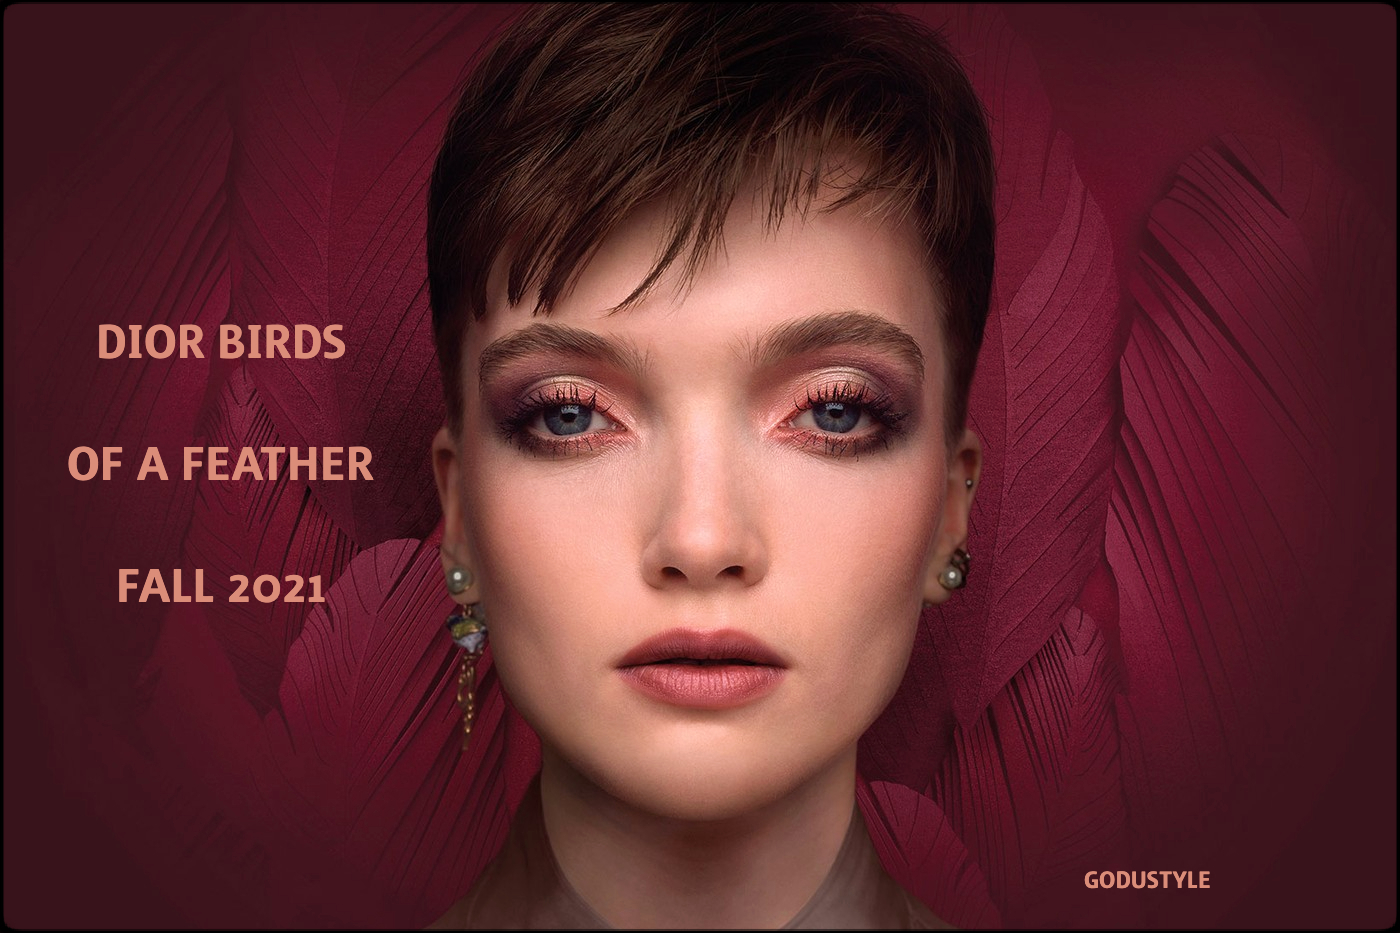 dior-birds-of-a-feather-makeup-collection-fall-2021-beauty-look-style-details-shopping-godustyle